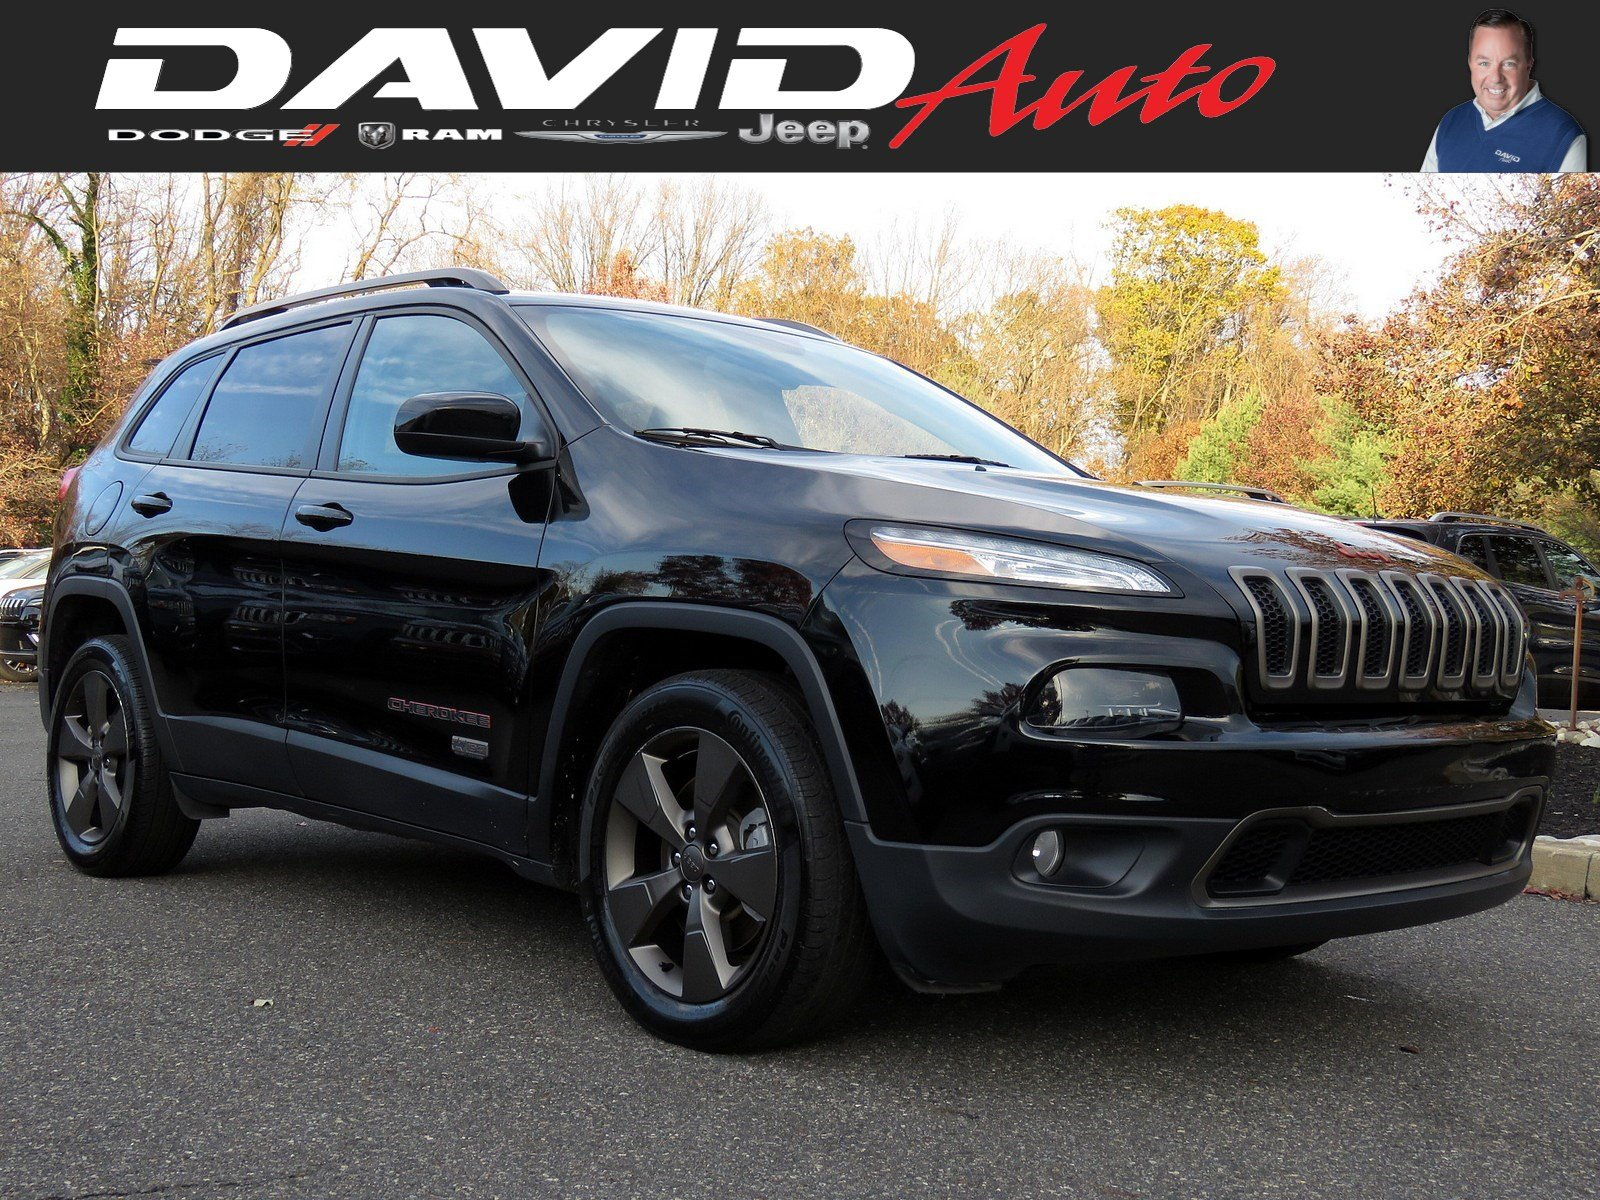 Certified Pre-Owned 2017 Jeep Cherokee 75th Anniversary Edition